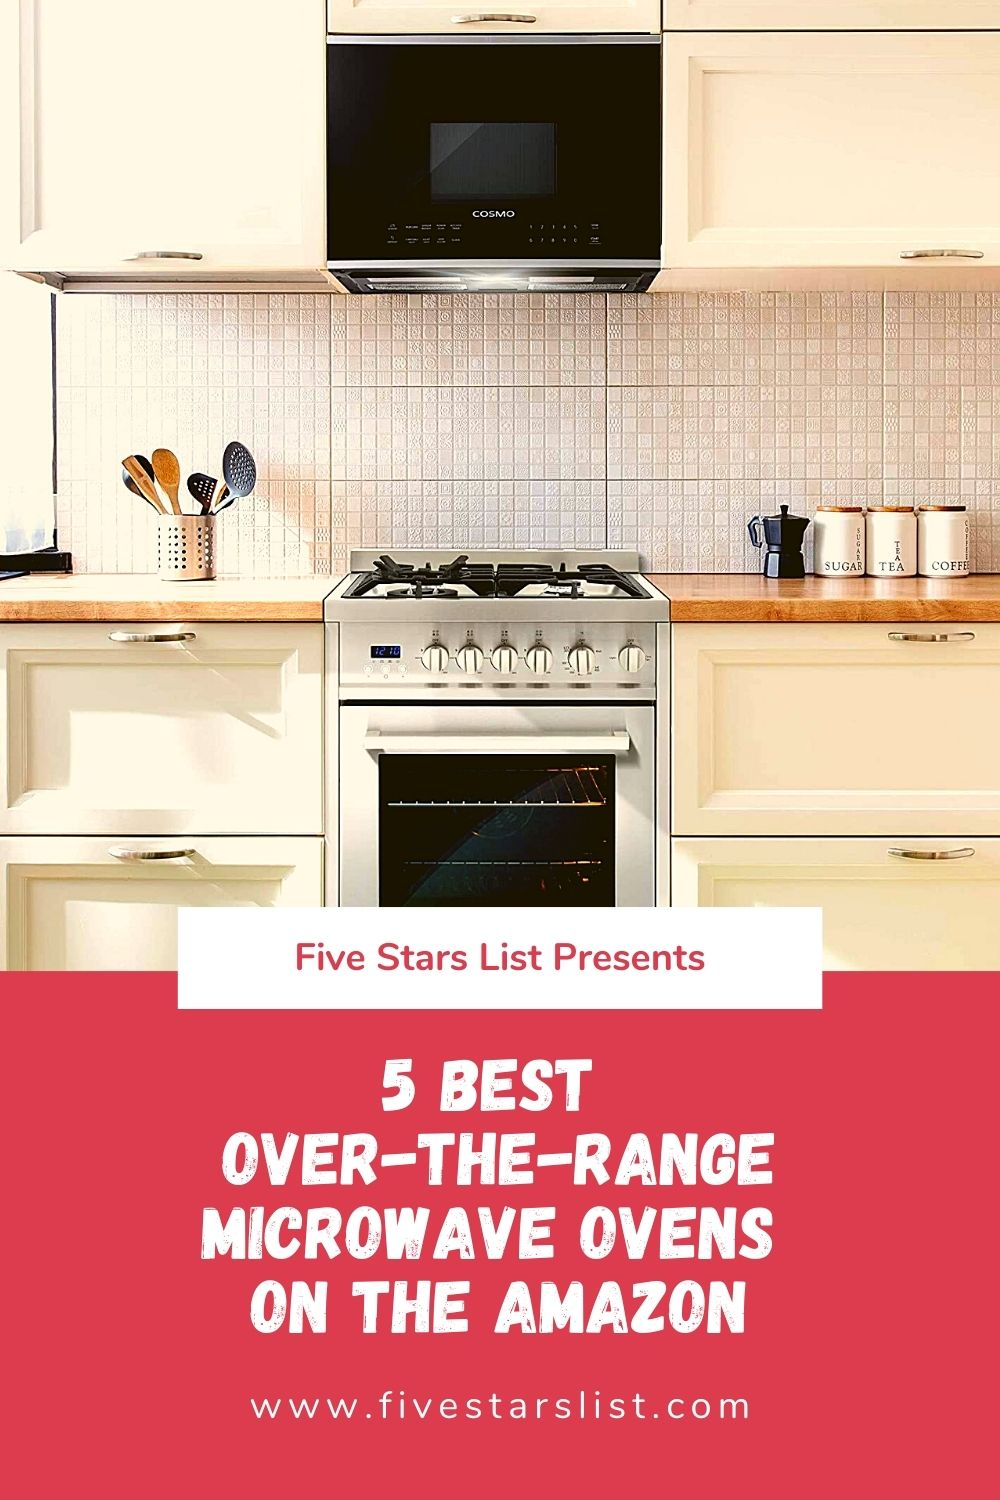 5 Best Over-the-Range Microwave Ovens on the Amazon